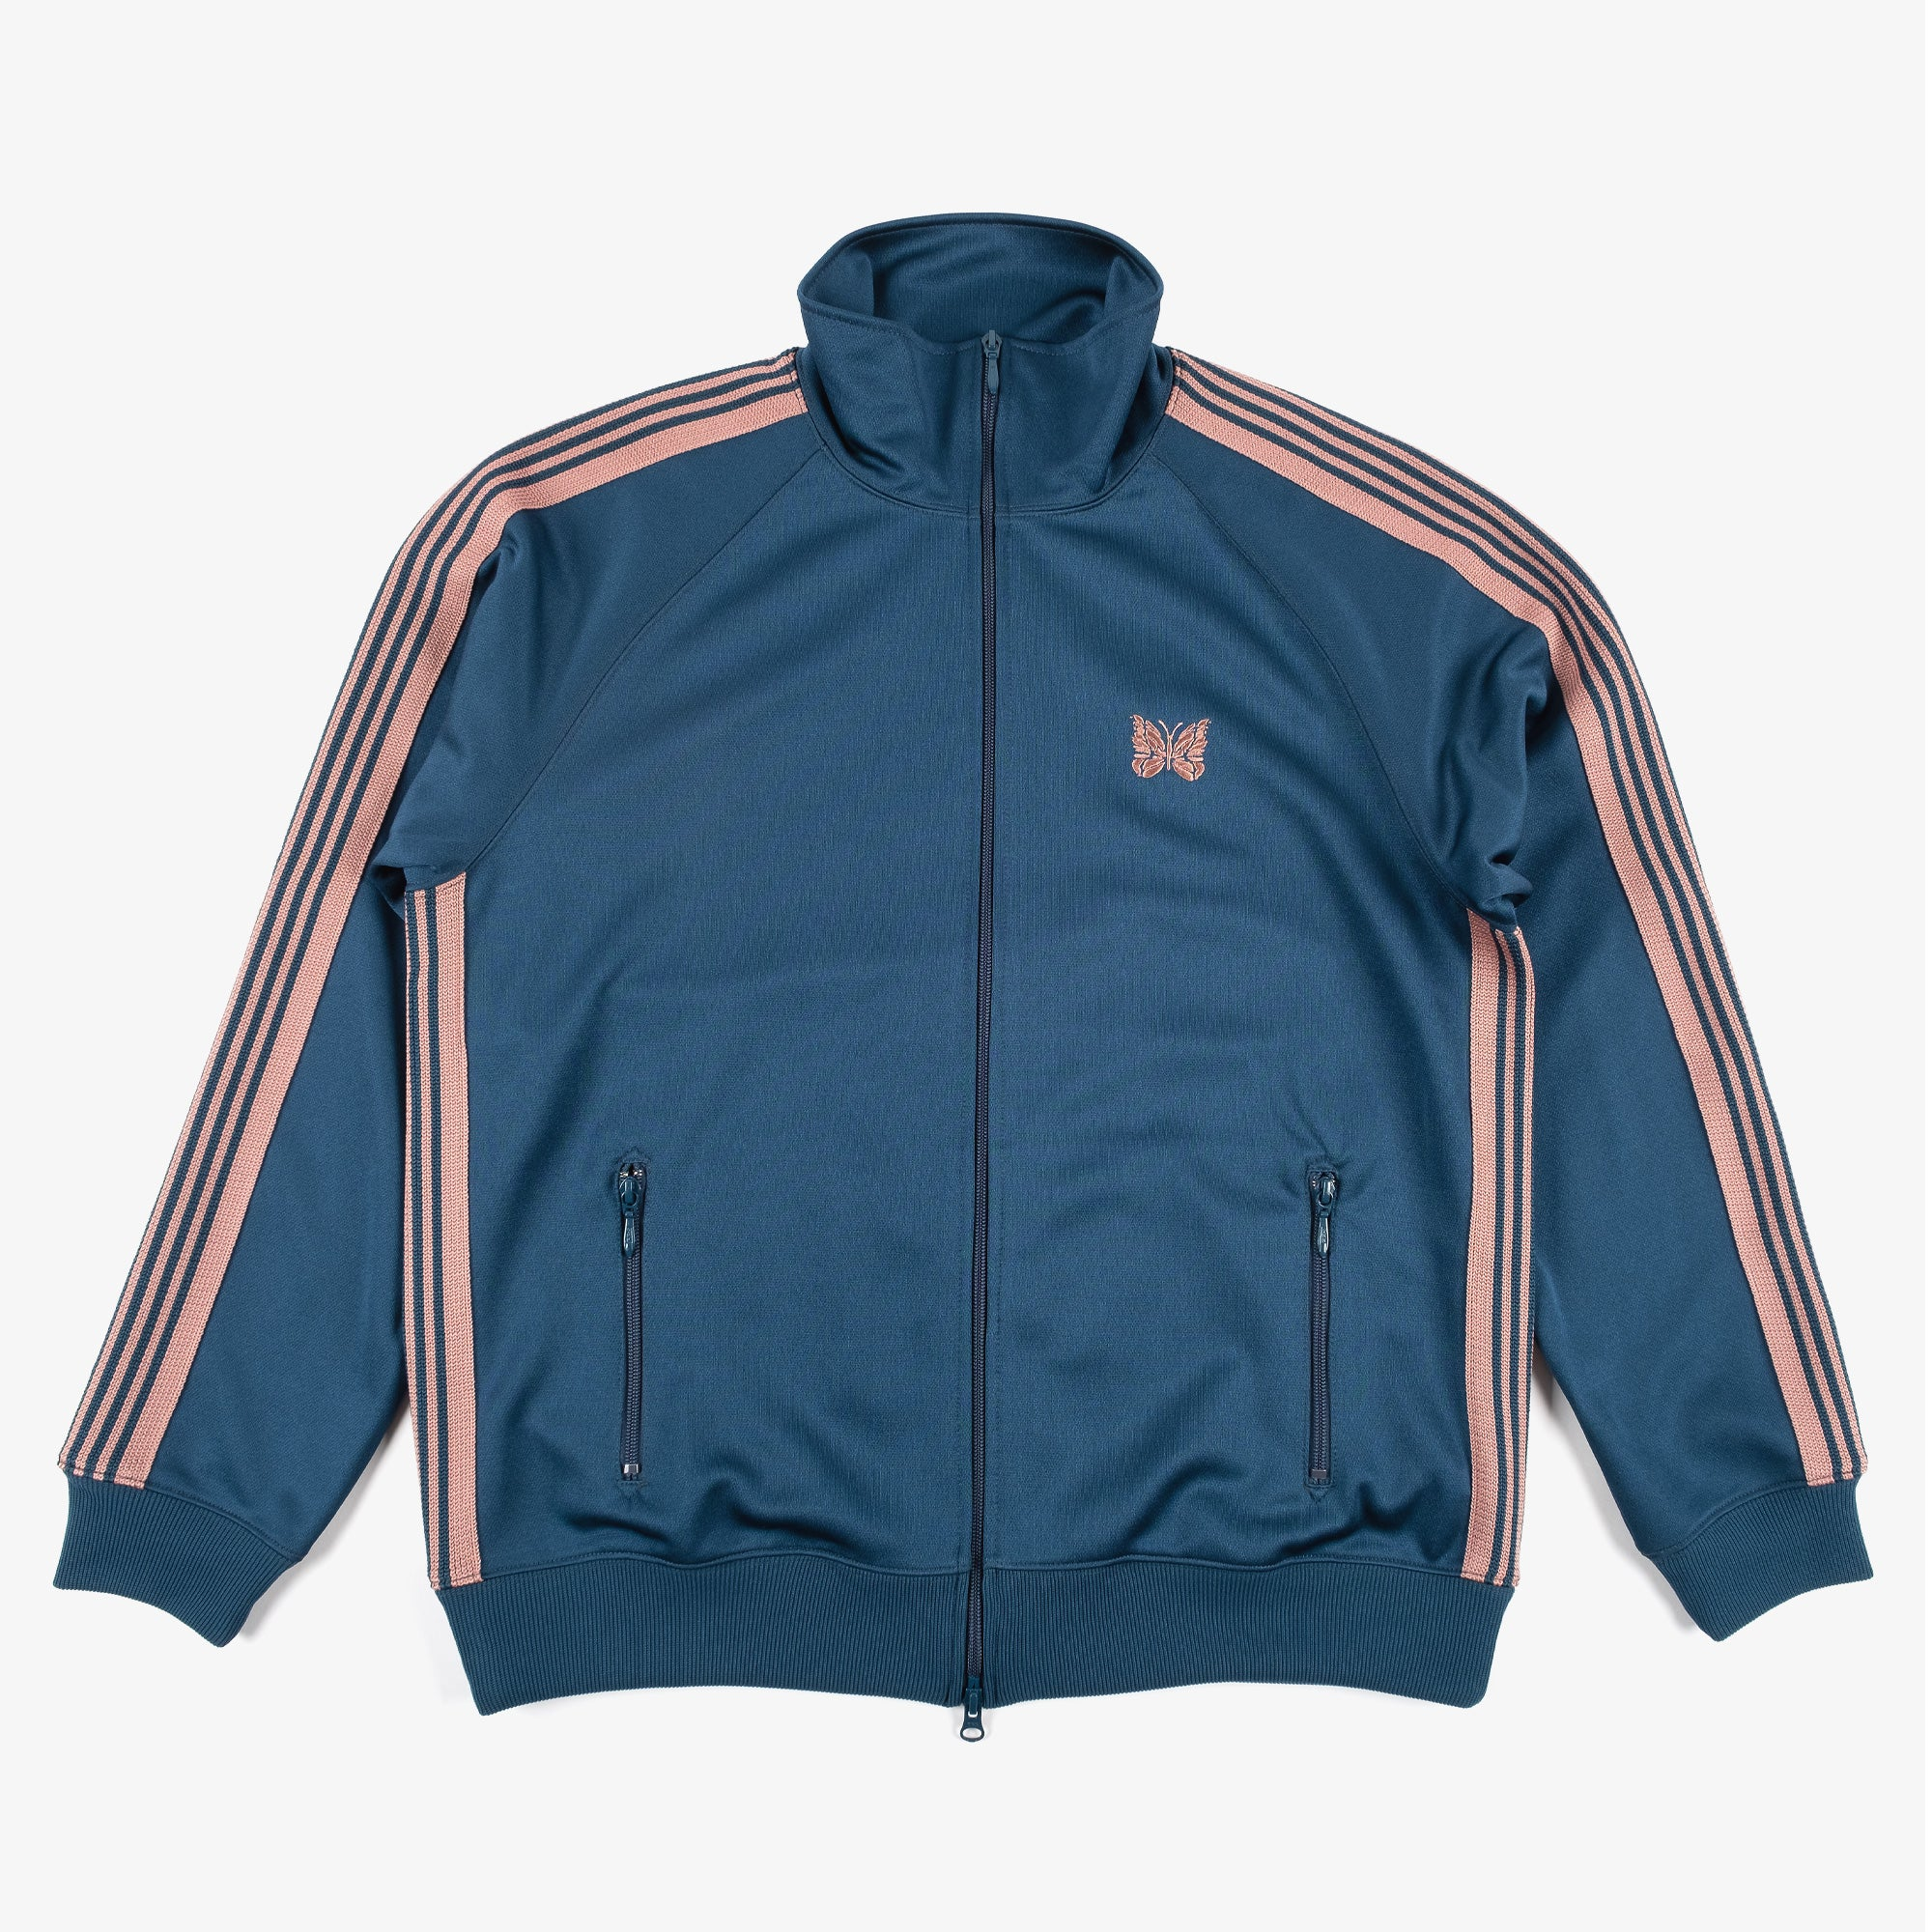 Needles M' Track Jacket - Poly Smooth Teal Green 1